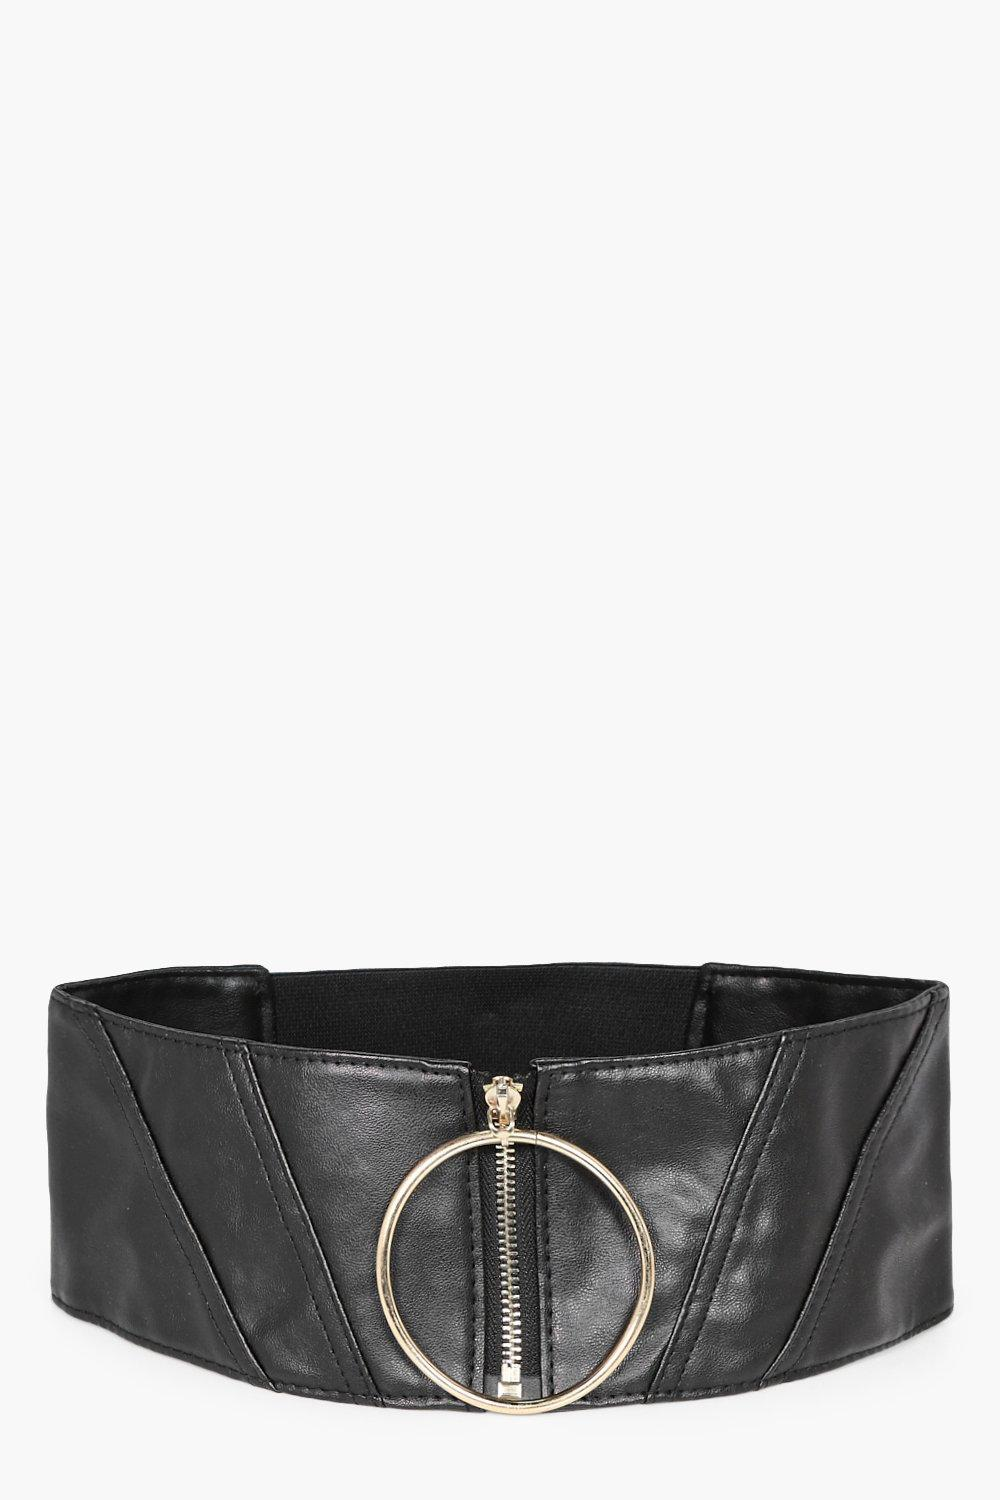 Oversized Ring & Zip Waist Belt - black - Olivia O